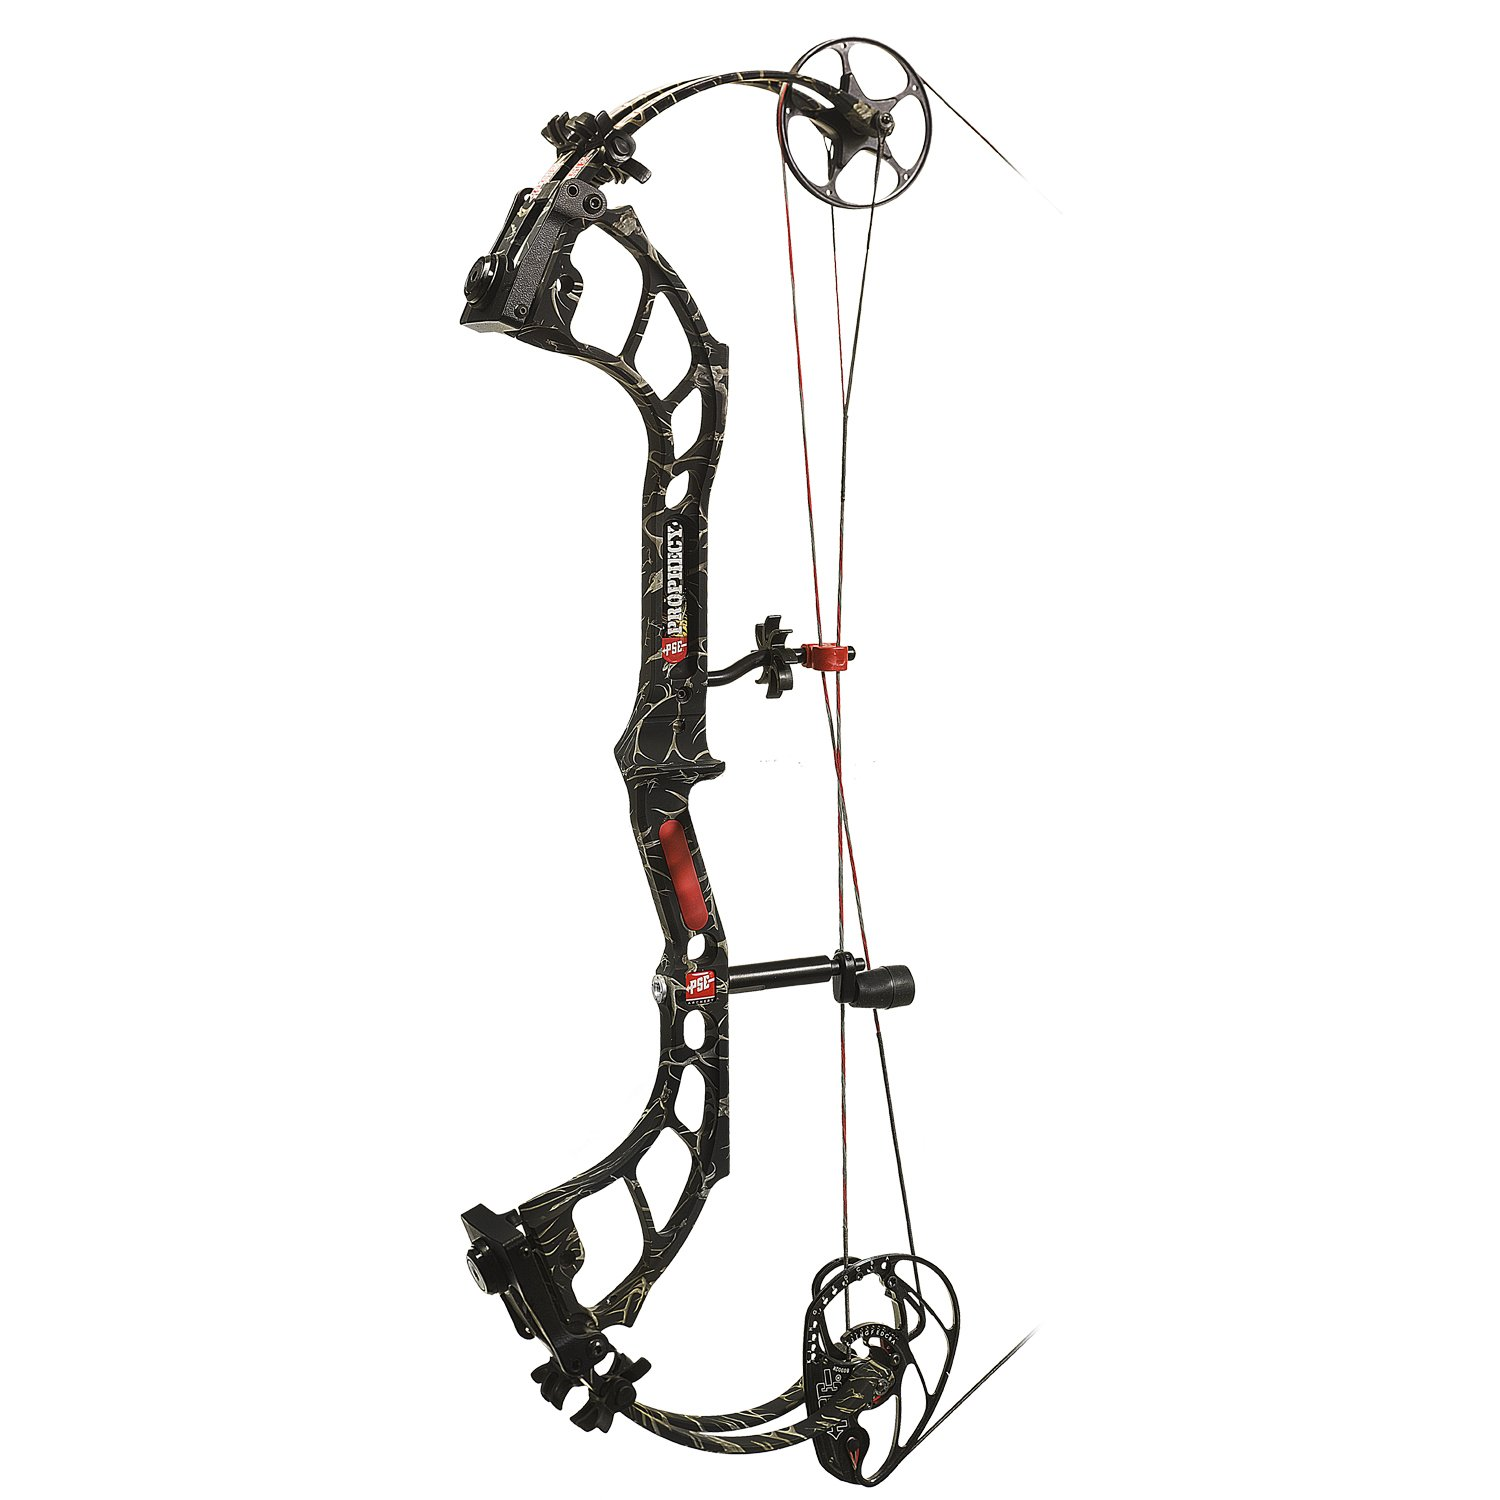 719MxojlYZL. SL1500  What Compound Bow Should I Get? This Is A Great Review That You Have Ever Seen